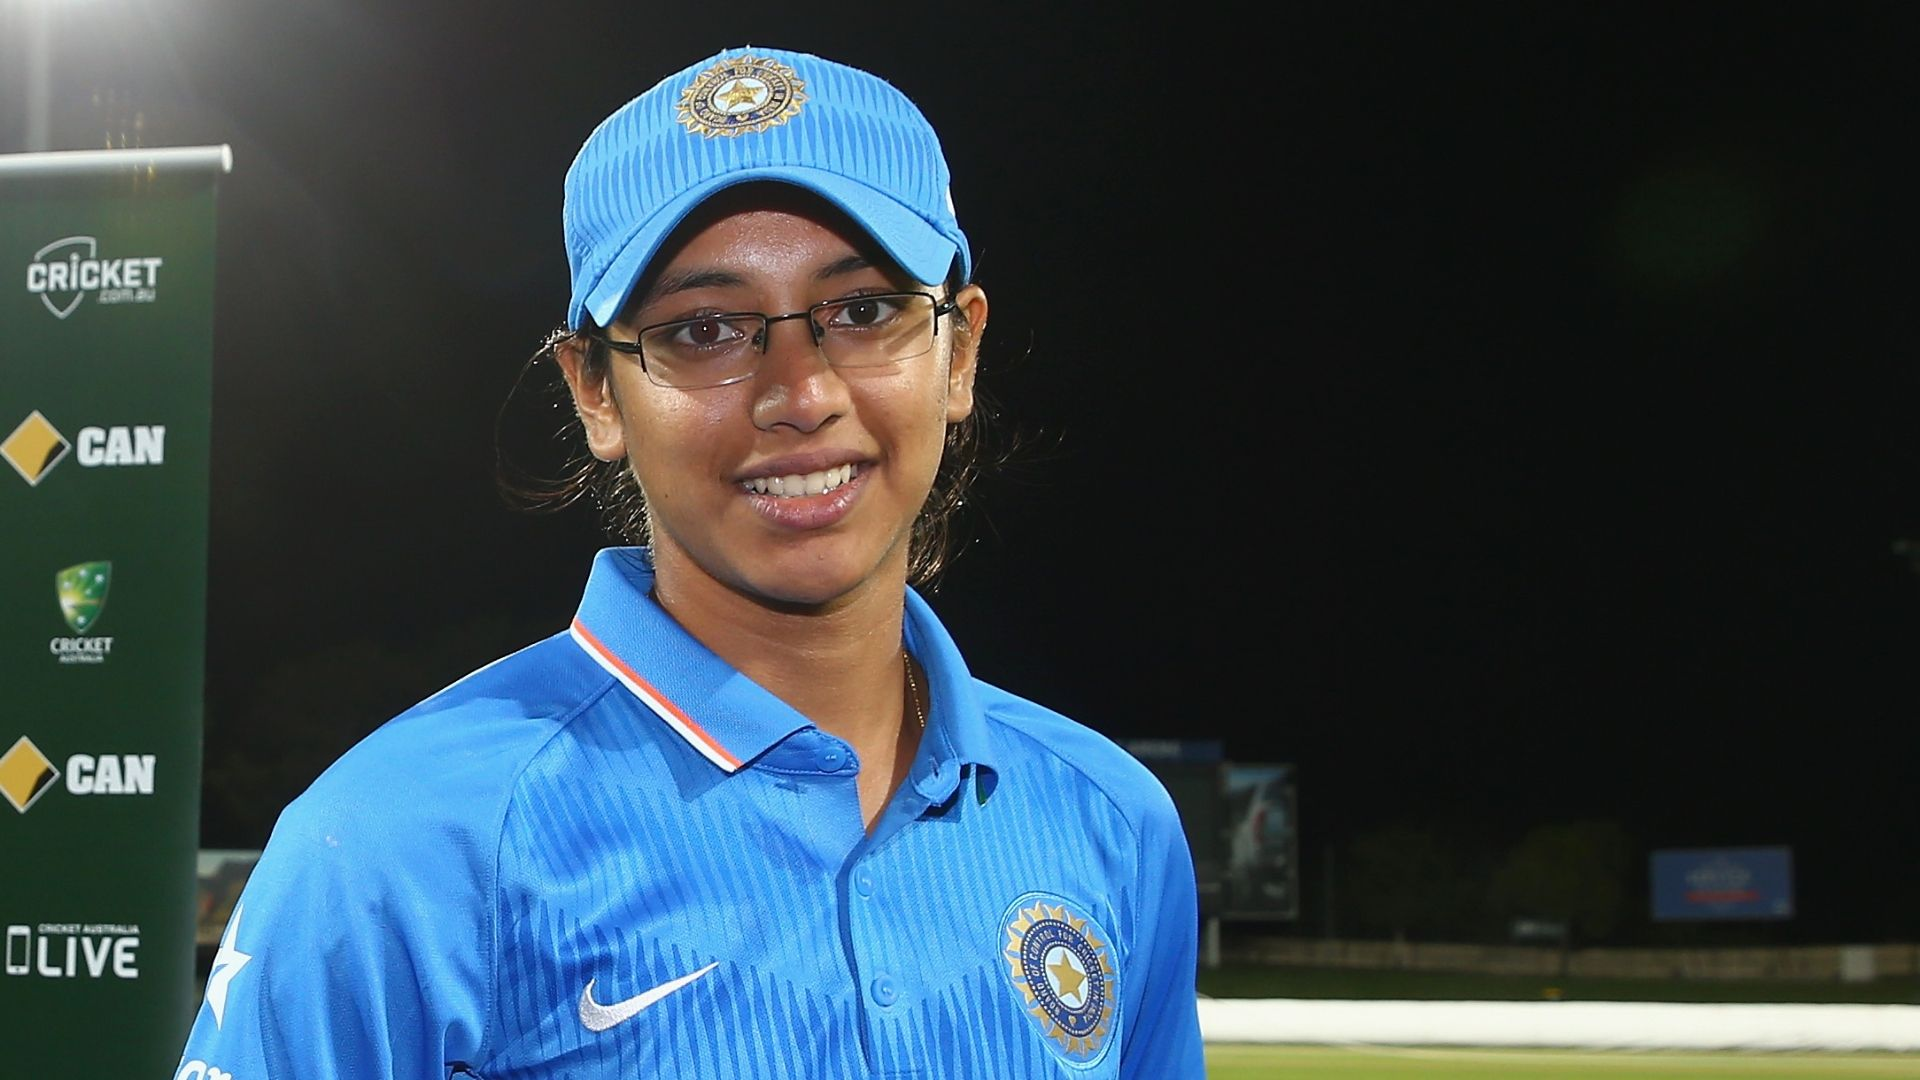 Cute Smriti Mandhana Free Hd Mobile Background Wallpapers